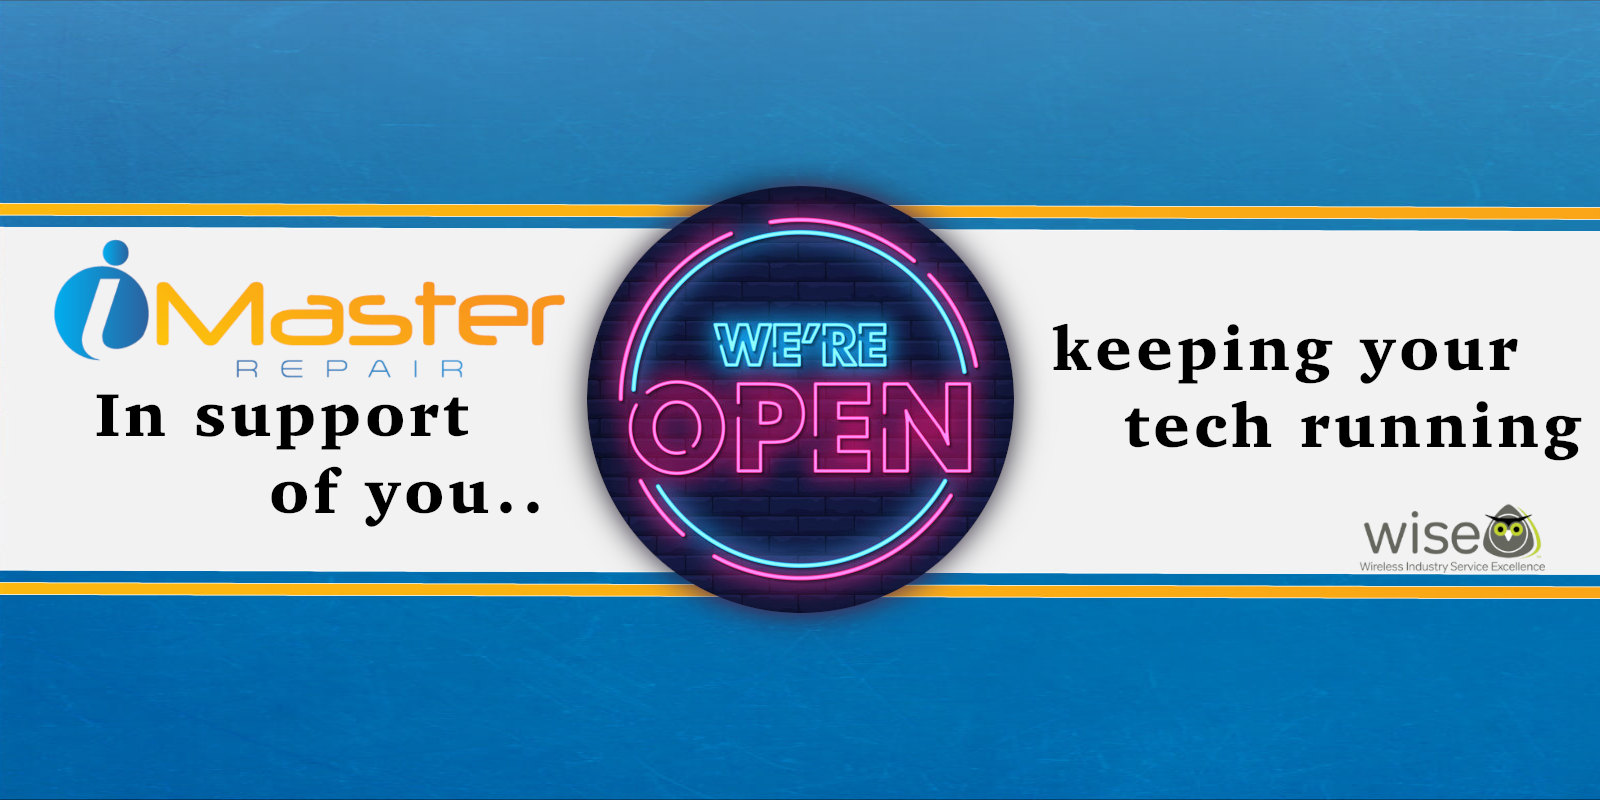 iMaster Repair is open during COVID-19 Pandemic to Repair your Essential Technology. iPad Repairs and More